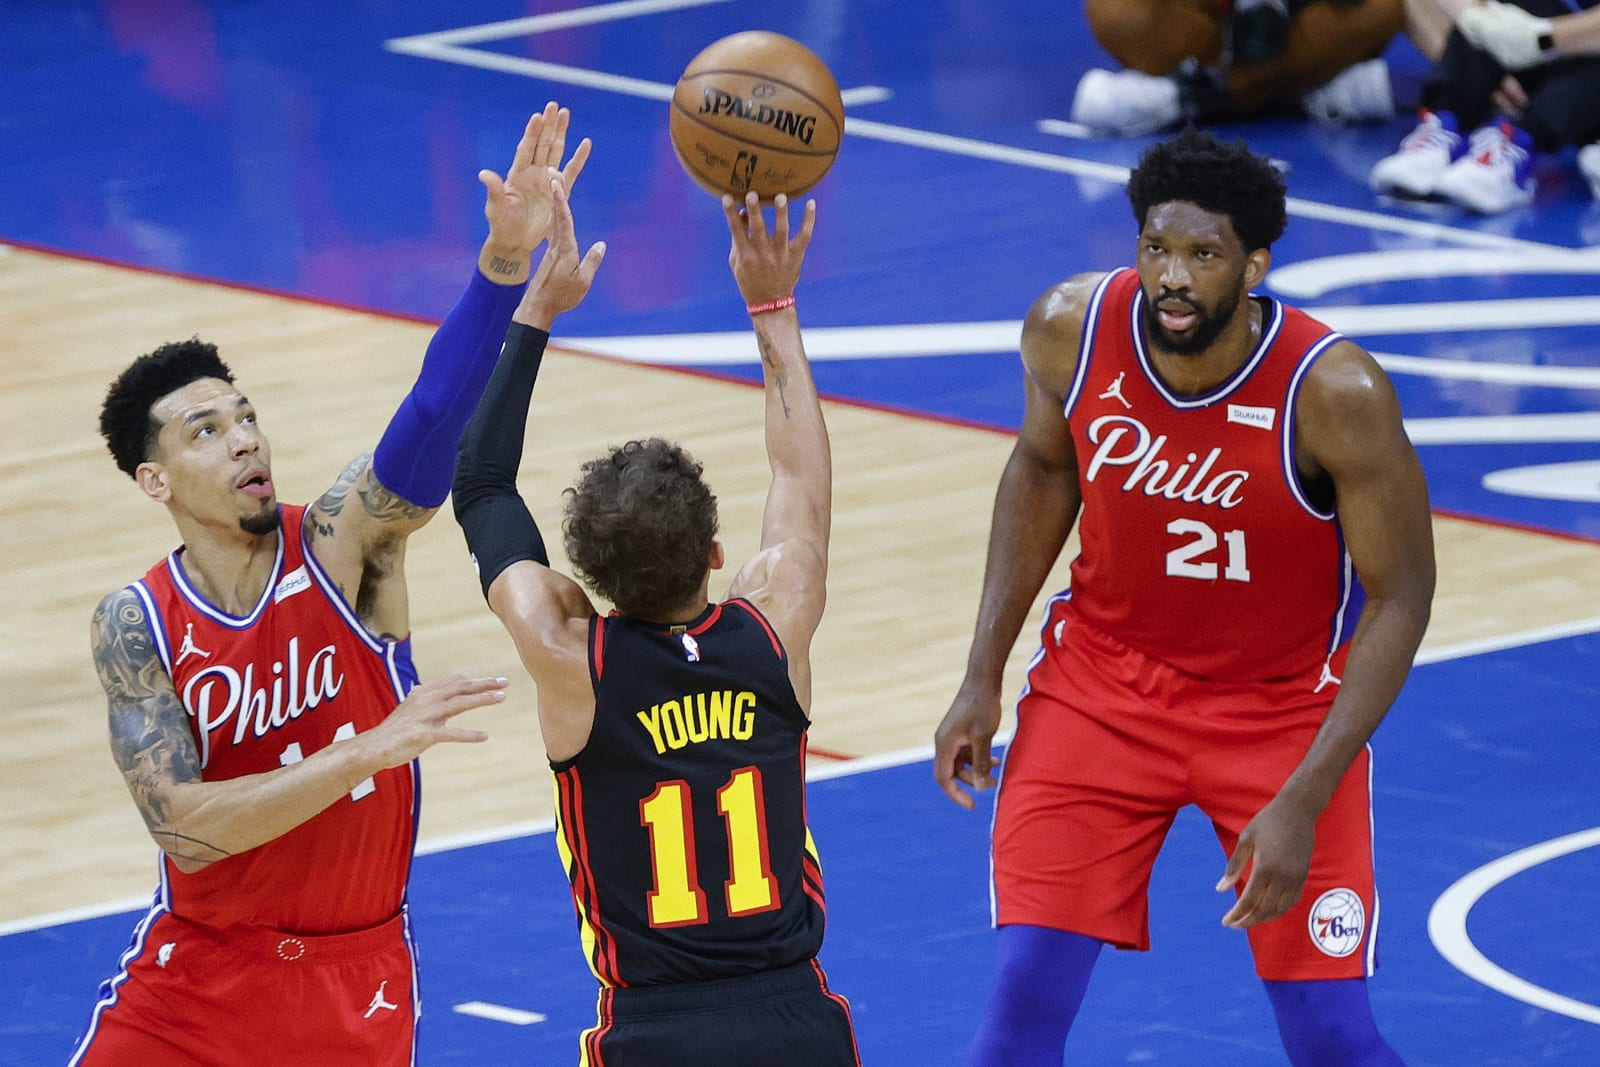 https%3A%2F%2Ffansided.com%2Fwp content%2Fuploads%2Fgetty images%2F2018%2F08%2F1322167576 1 3 improvements Philadelphia needs to make for Game 2 vs. Hawks